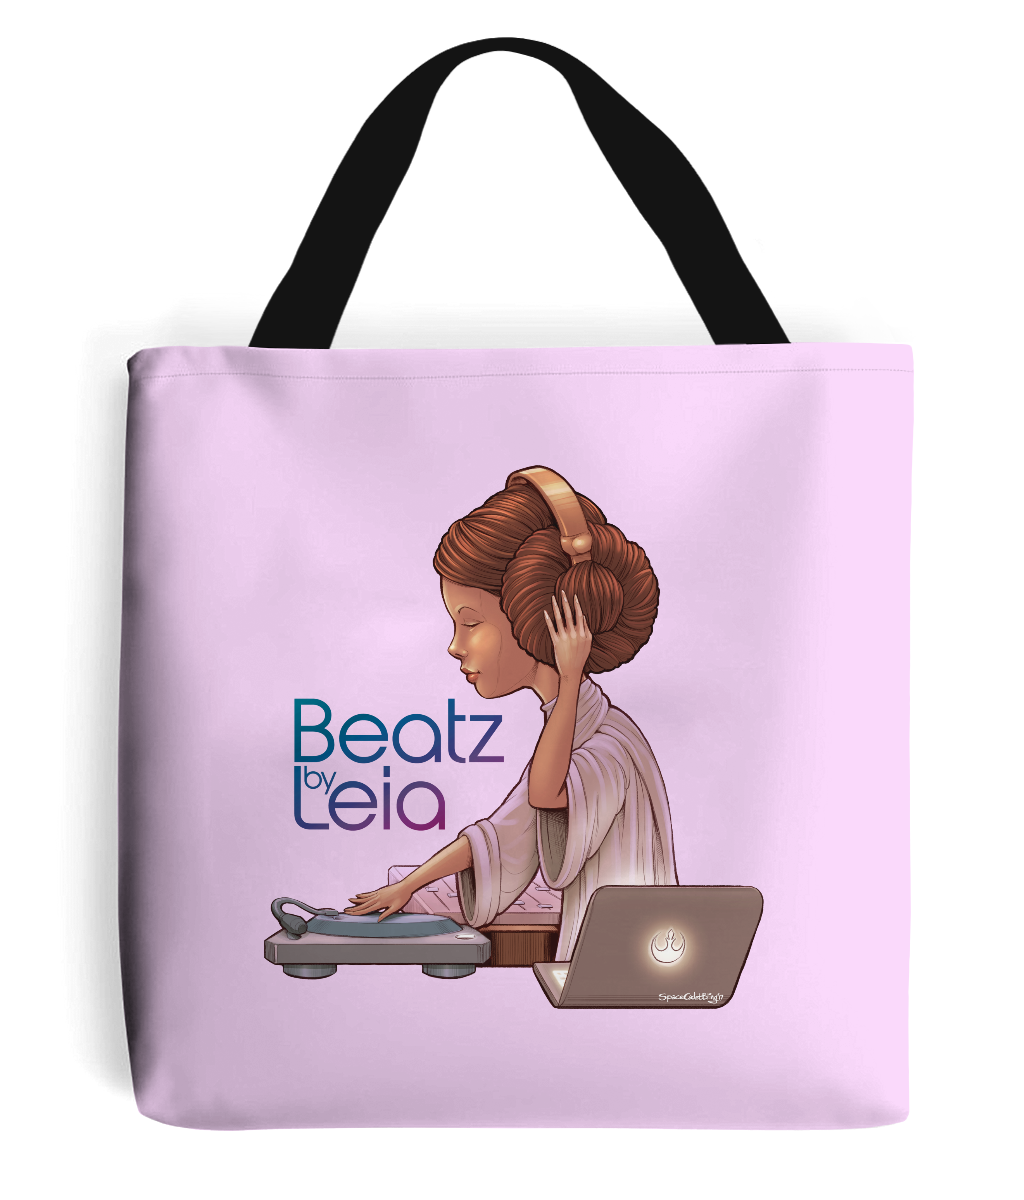 Beatz by Leia Tote Bag